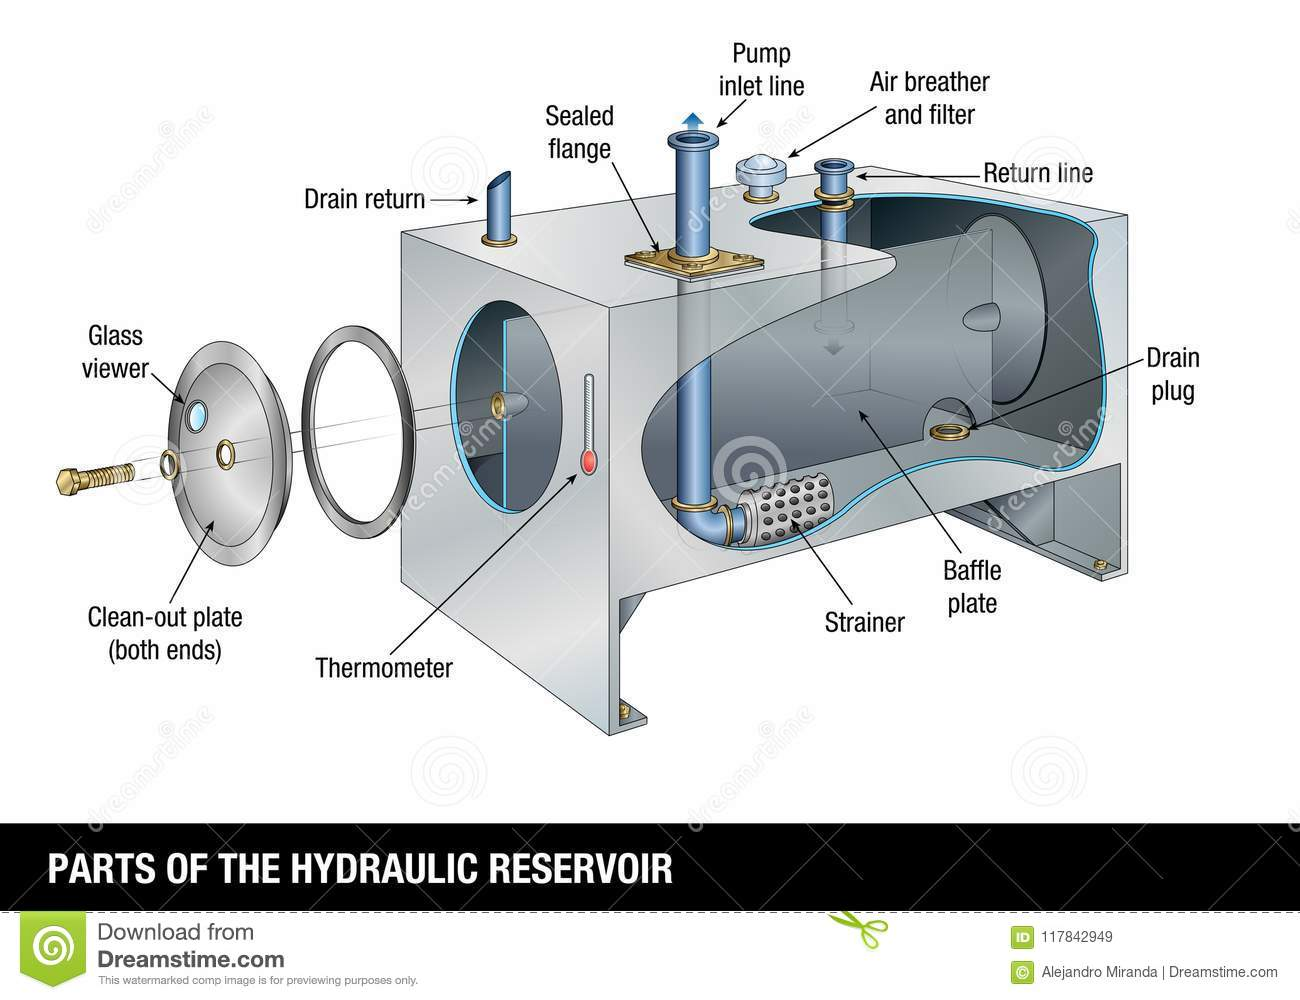 PARTS OF THE HYDRAULIC RESERVOIR The Graph Shows The